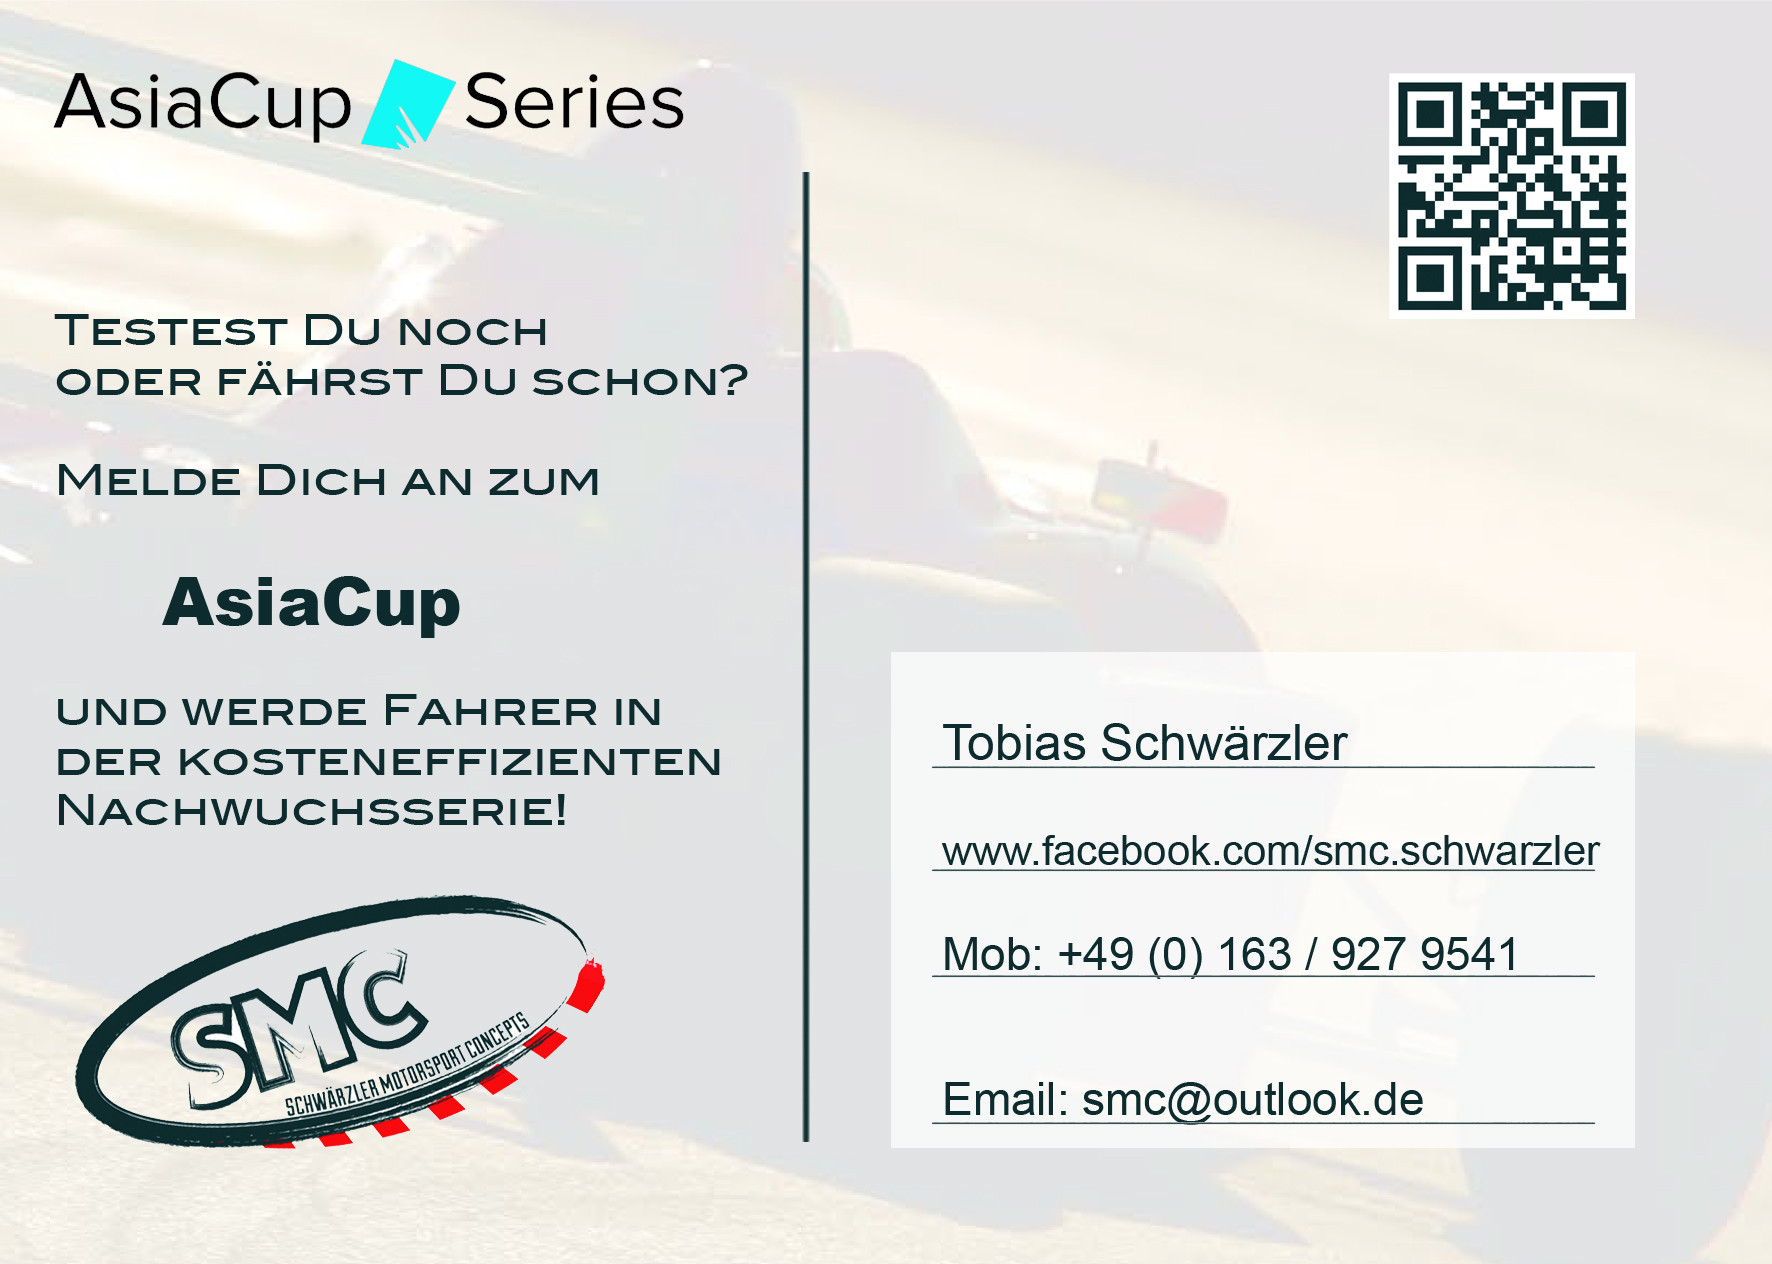 Promotionflyer AsiaCup Series